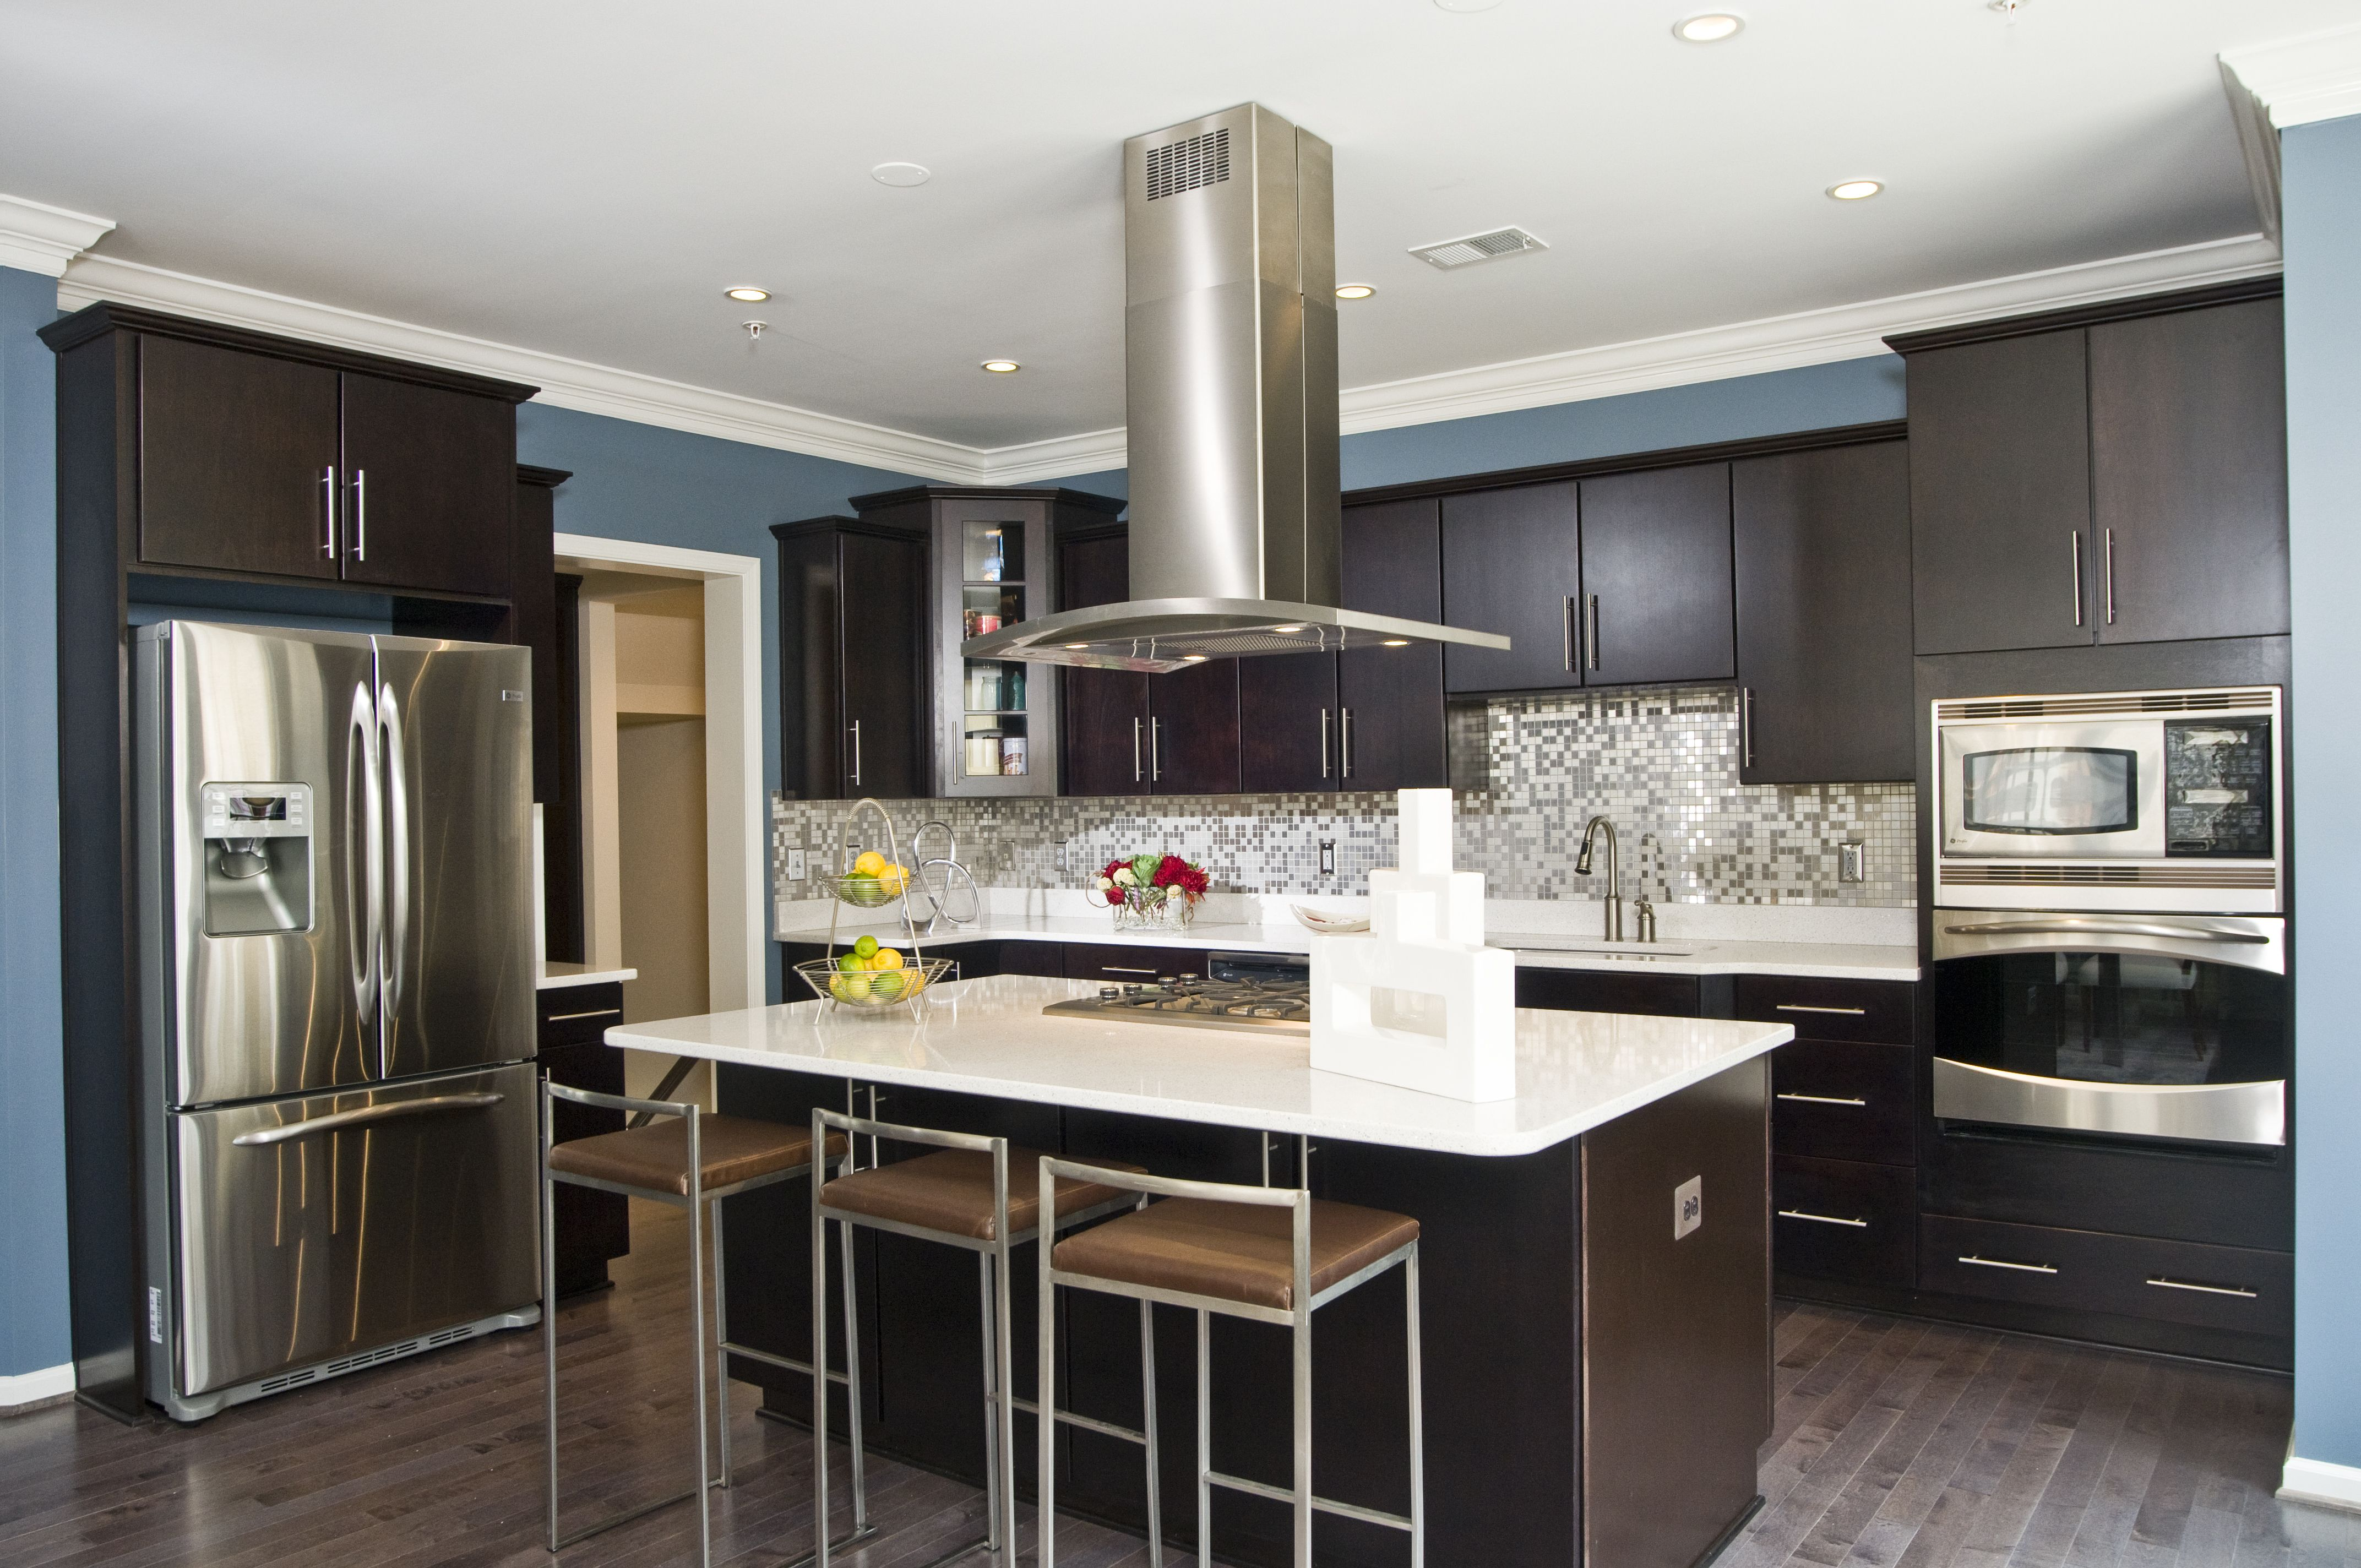 Integrity Homes Gourmet Kitchen At National Harbor Md  Interiors Stunning Interior Design Kitchens 2014 2018